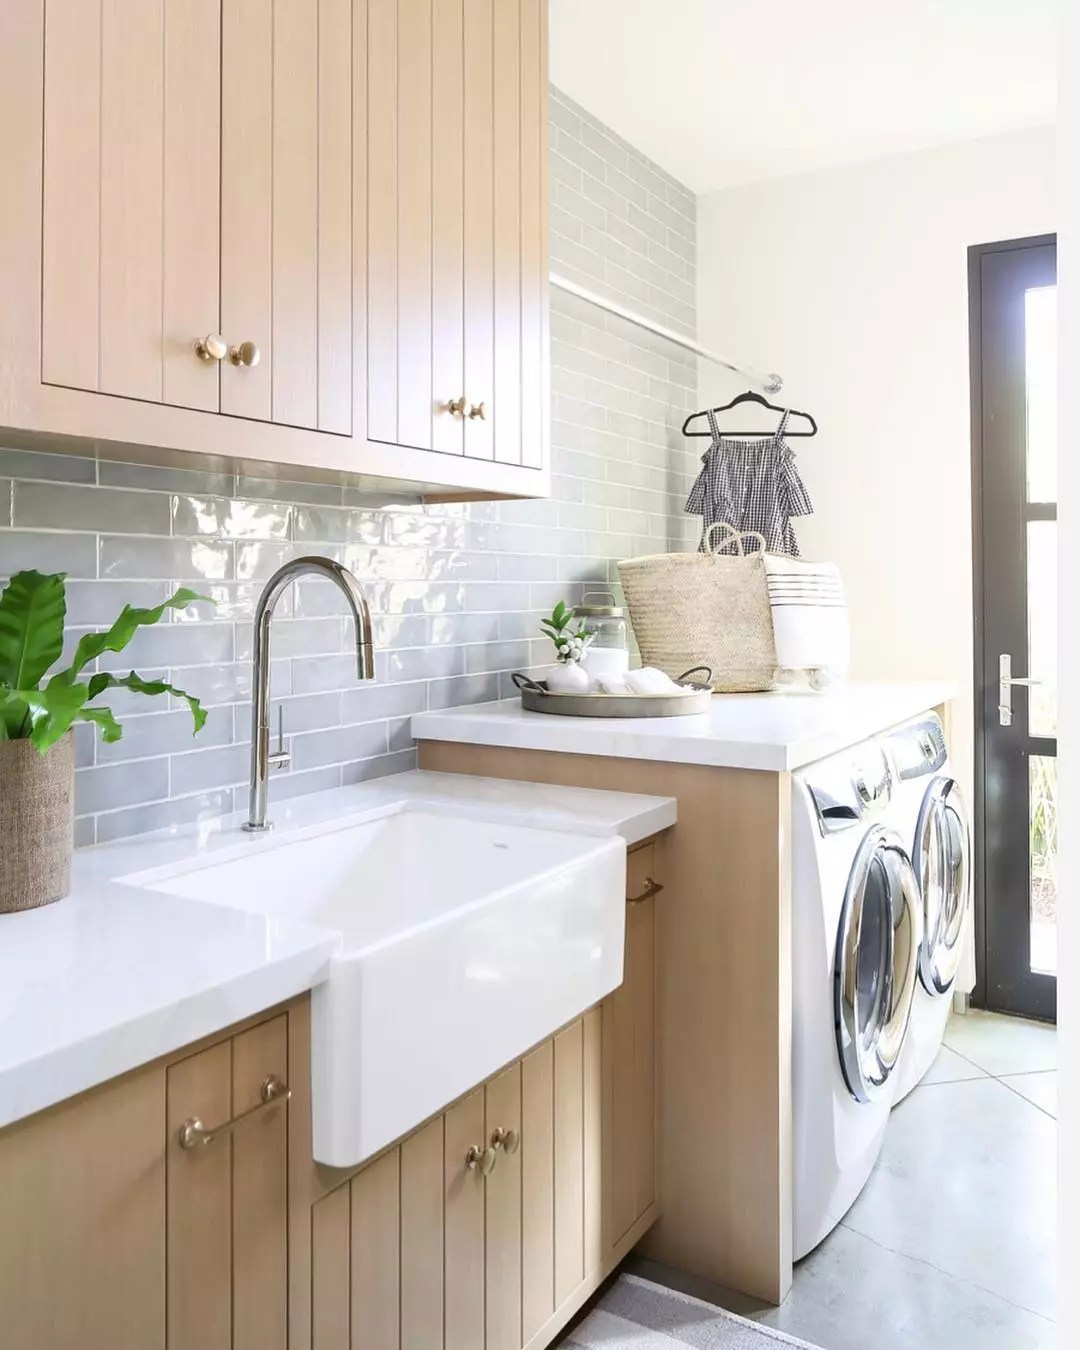 Farmhouse laundry room. Photo by Instagram user @brookewagnerdesign